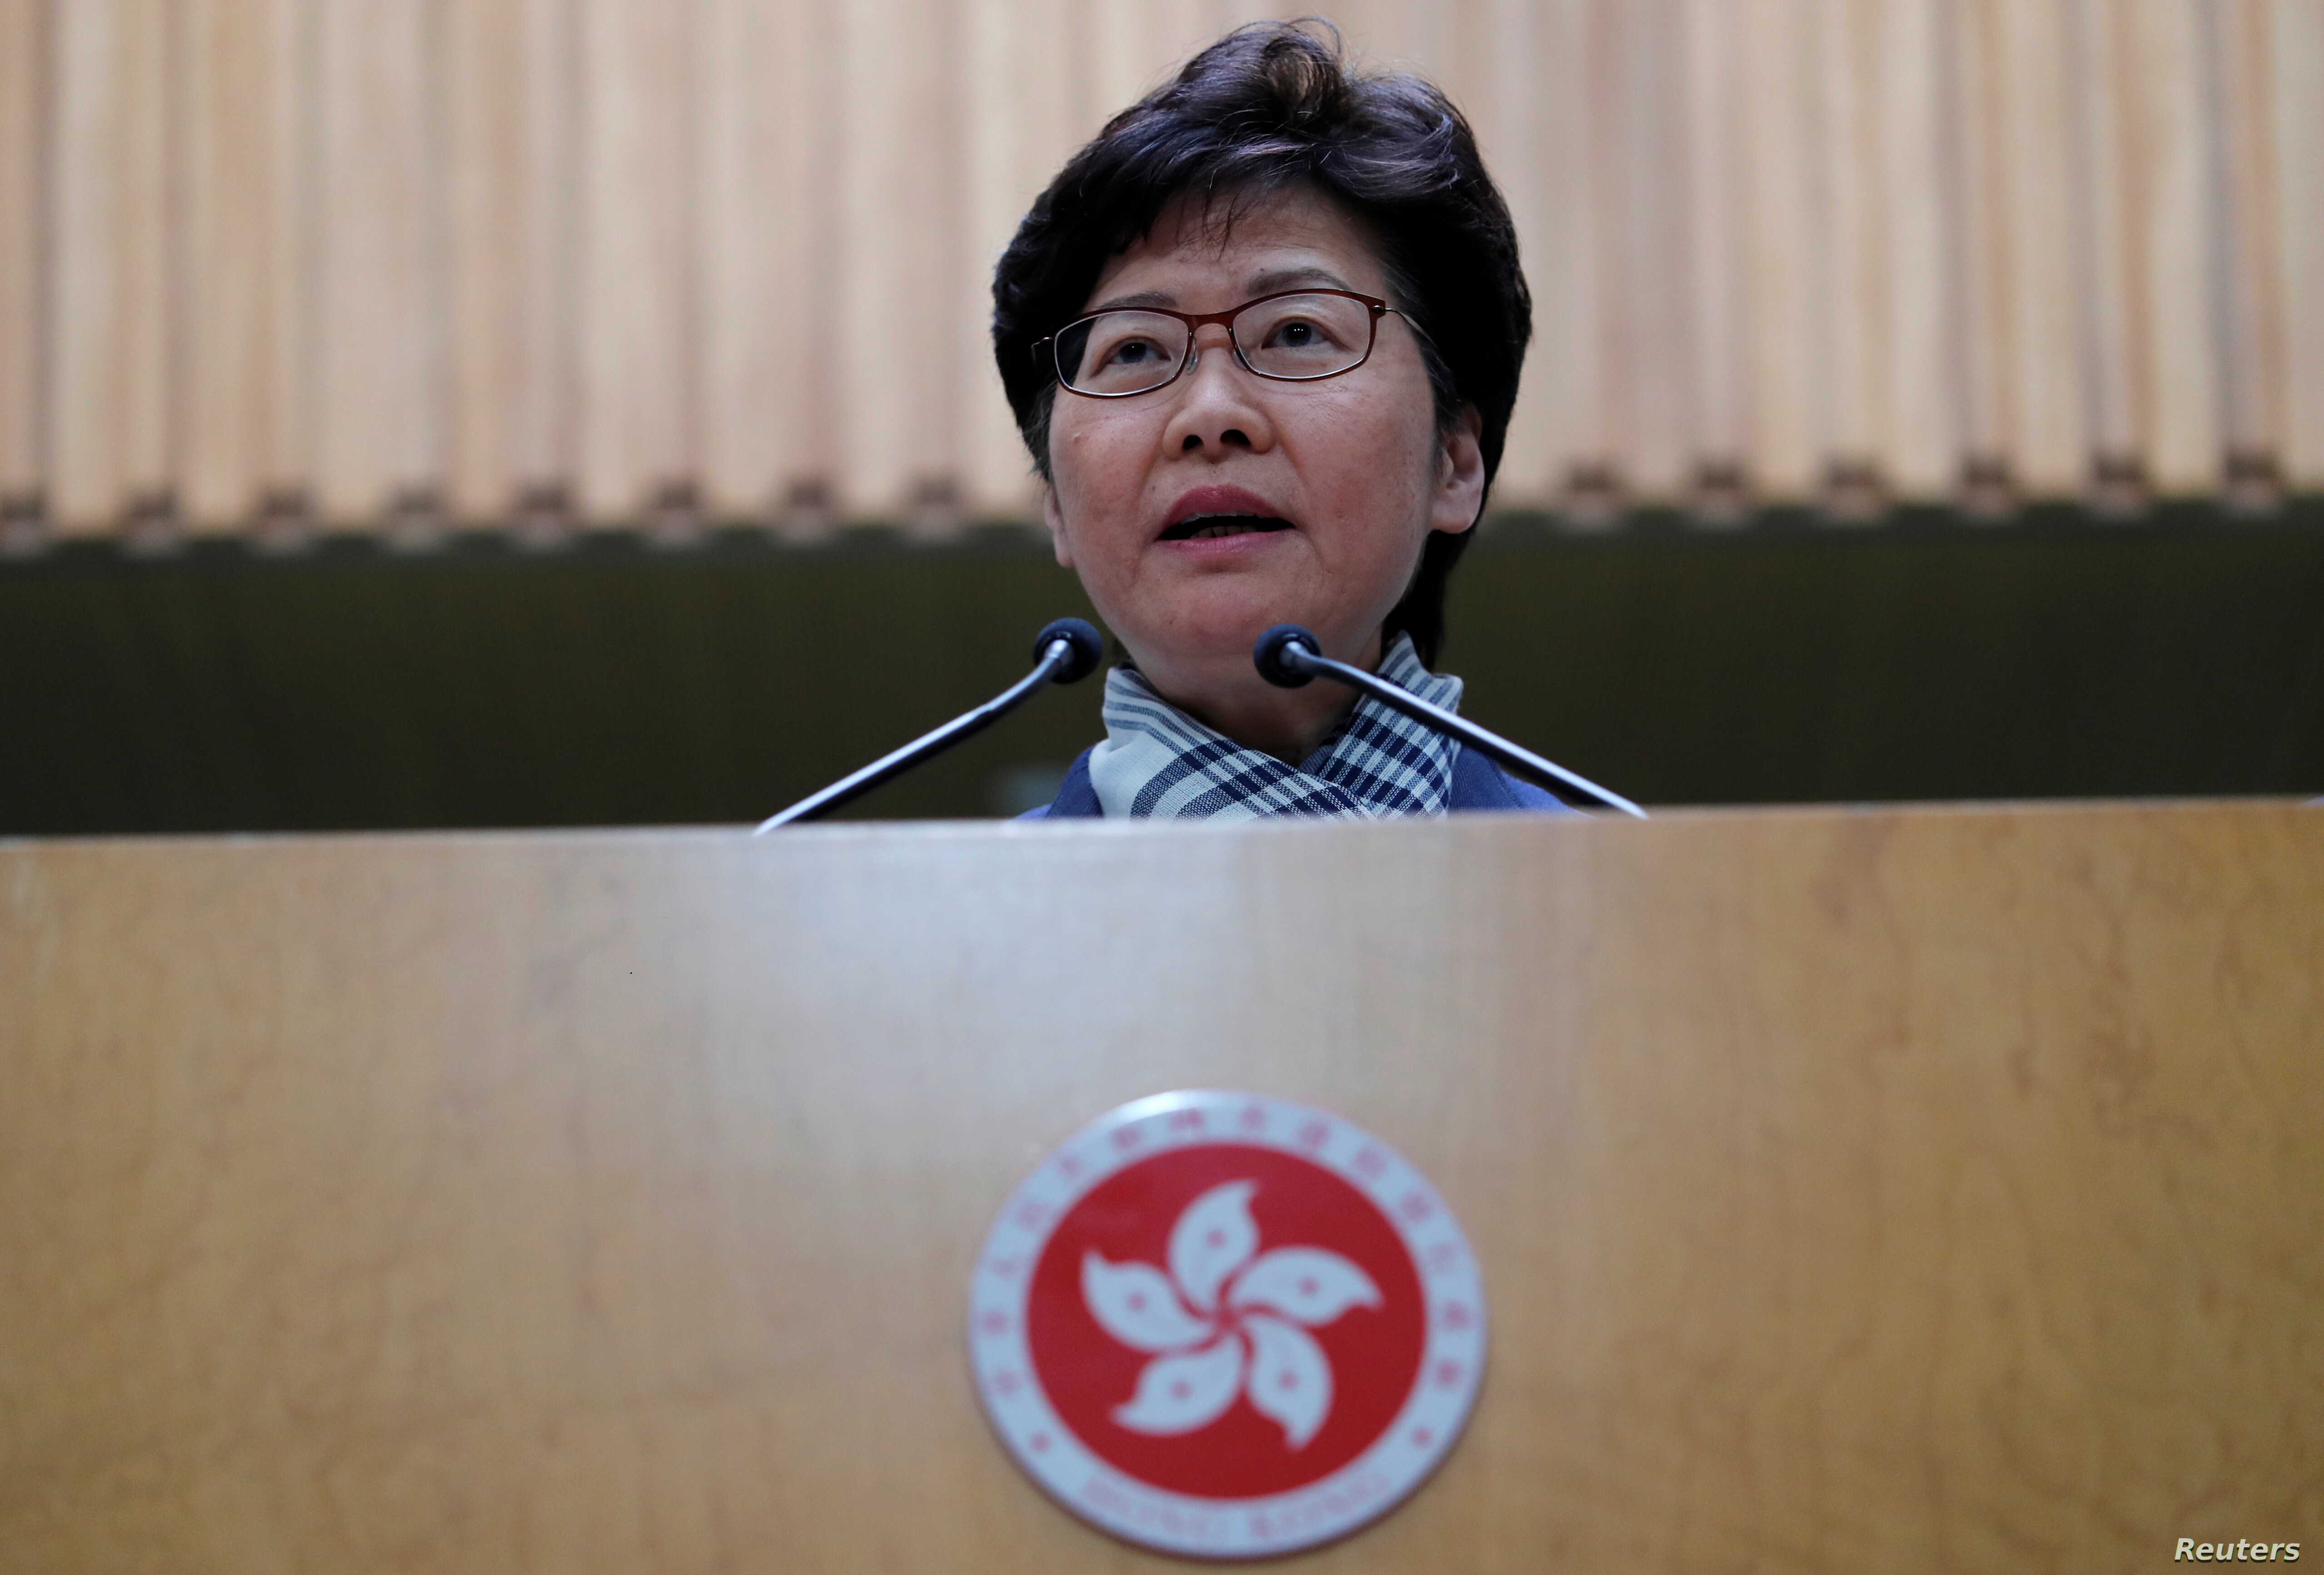 China urges foreign politicians to stop meddling in Hong Kong affairs